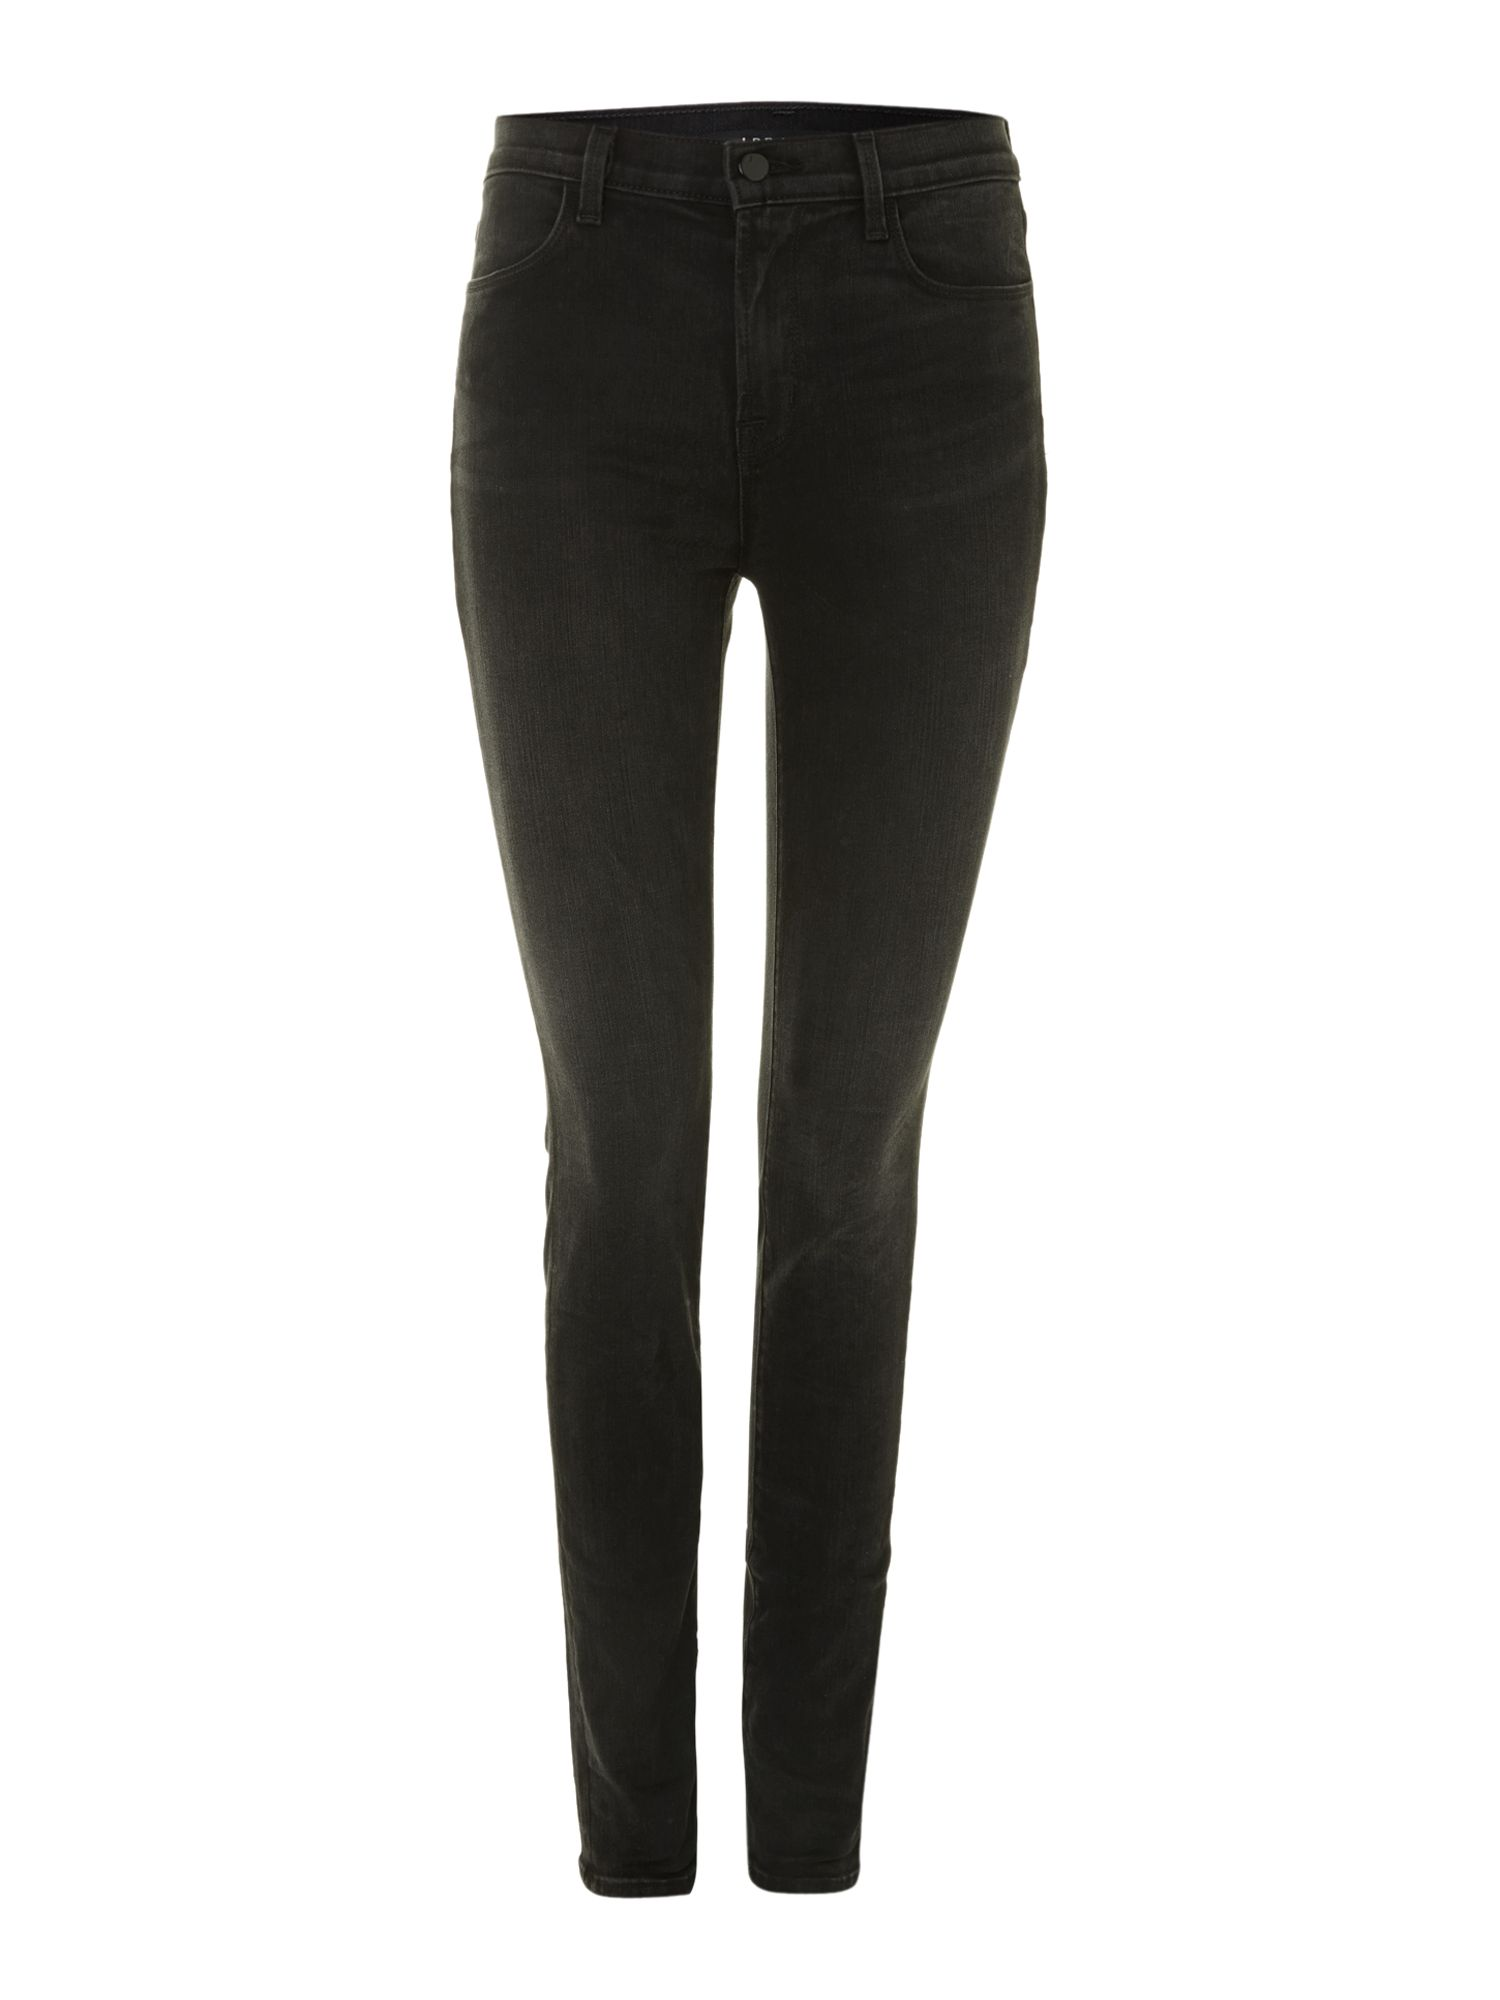 Maria high-rise skinny jeans in Graphite